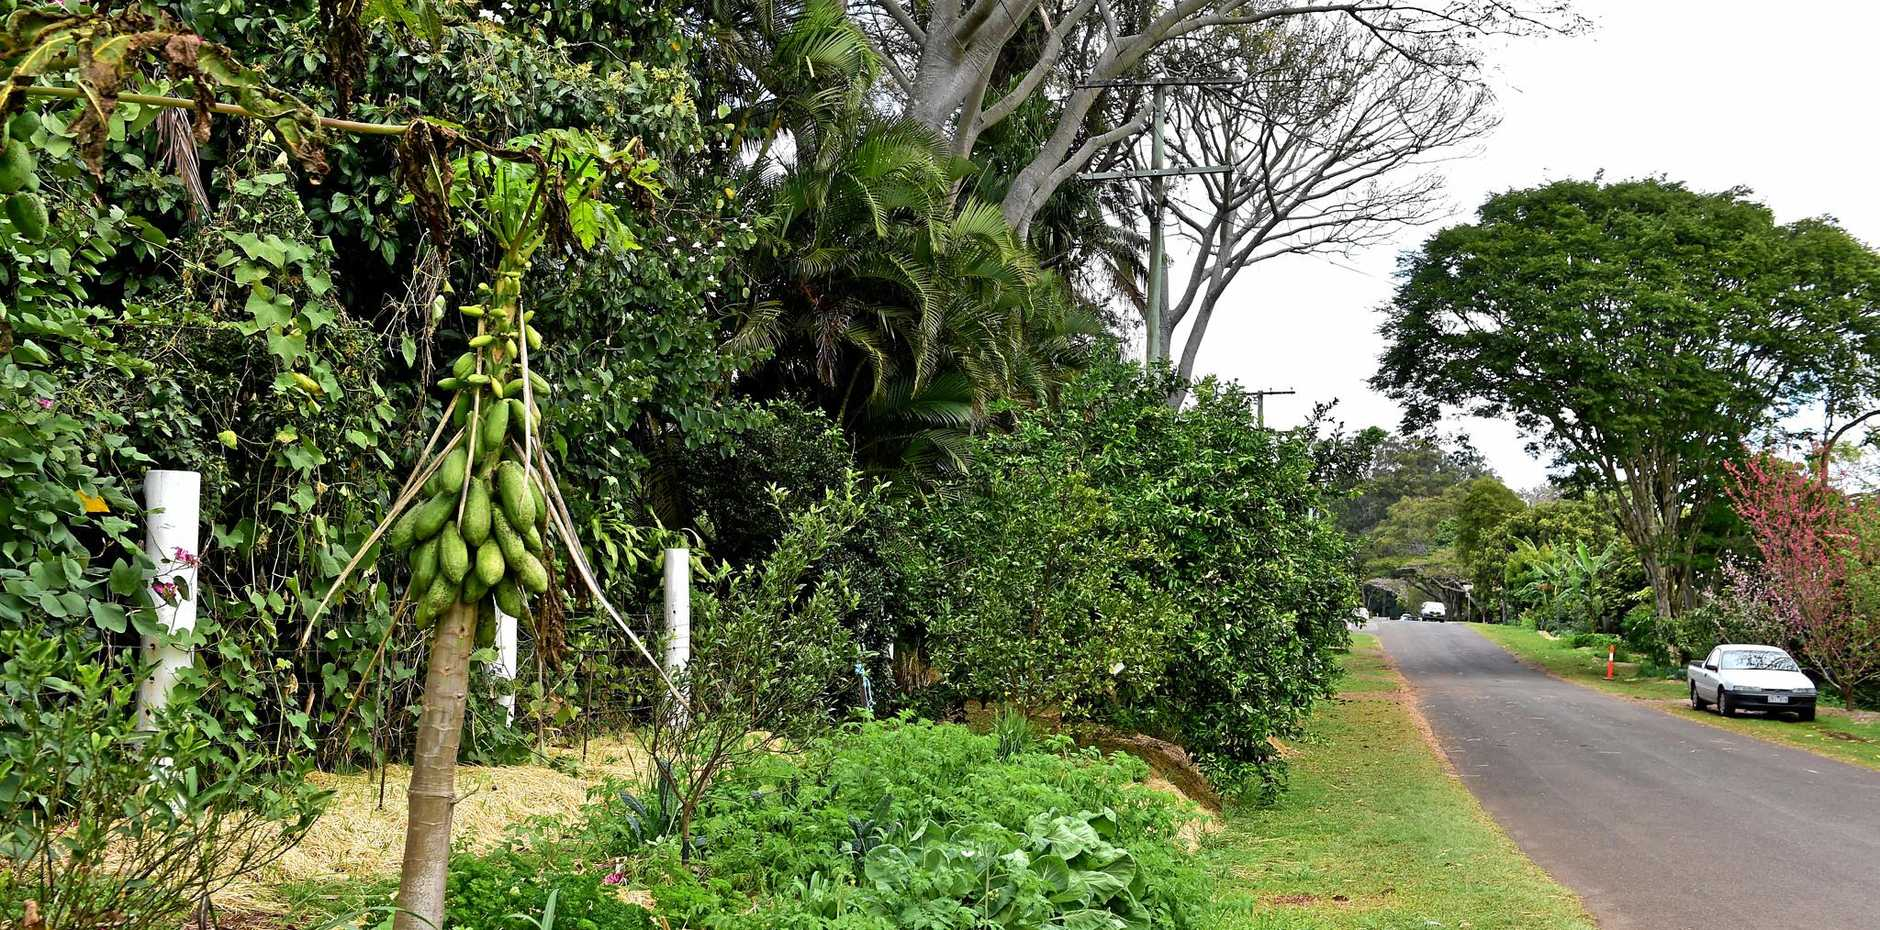 Good morning Buderim. Food Street in Buderim is fantastic place to see what can be created with neighbourhood sidewalks, land is used to grow edible produce that is shared. More can be found online at - https://www.facebook.com/urbanfoodstreet -  Photo: Che Chapman / Sunshine Coast Daily